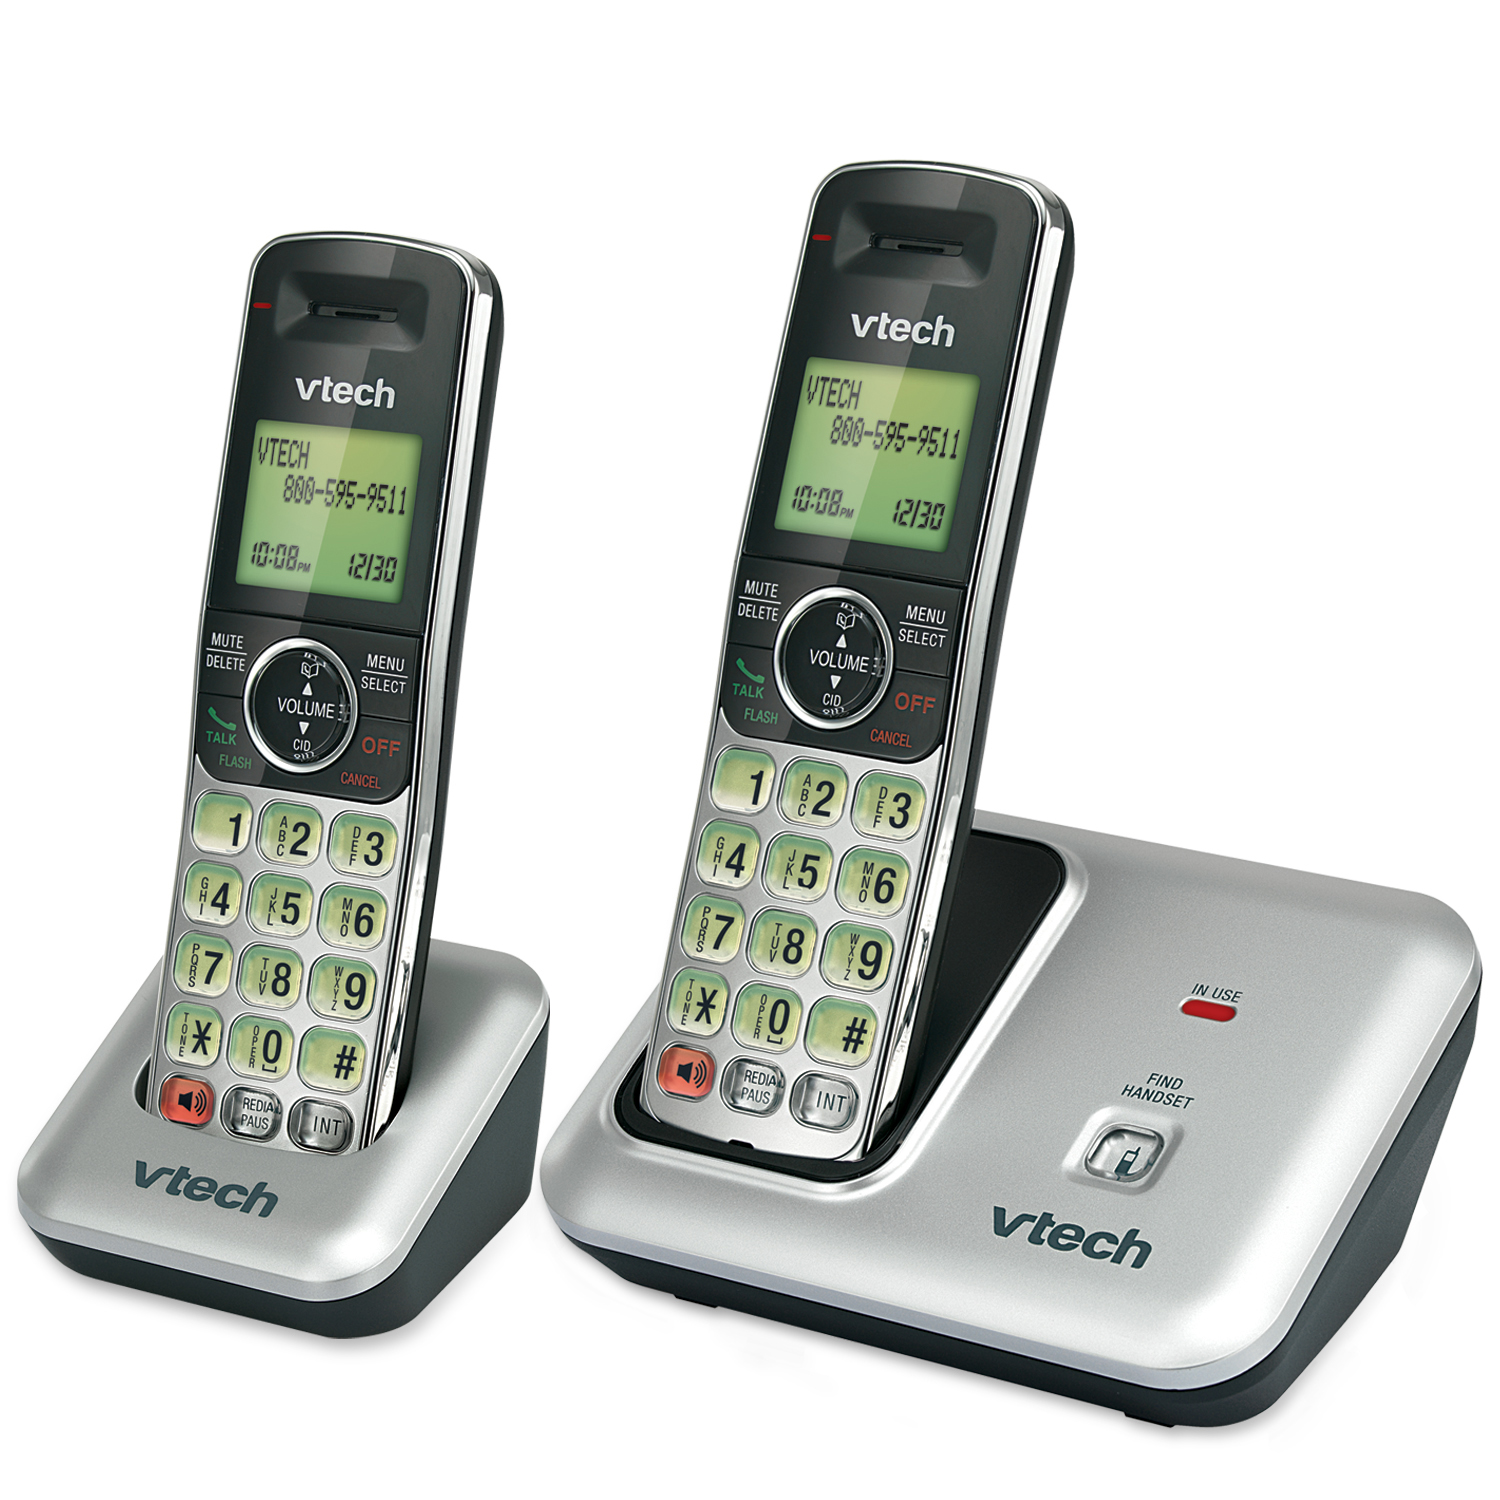 2 Handset Cordless Phone with Caller ID/Call Waiting